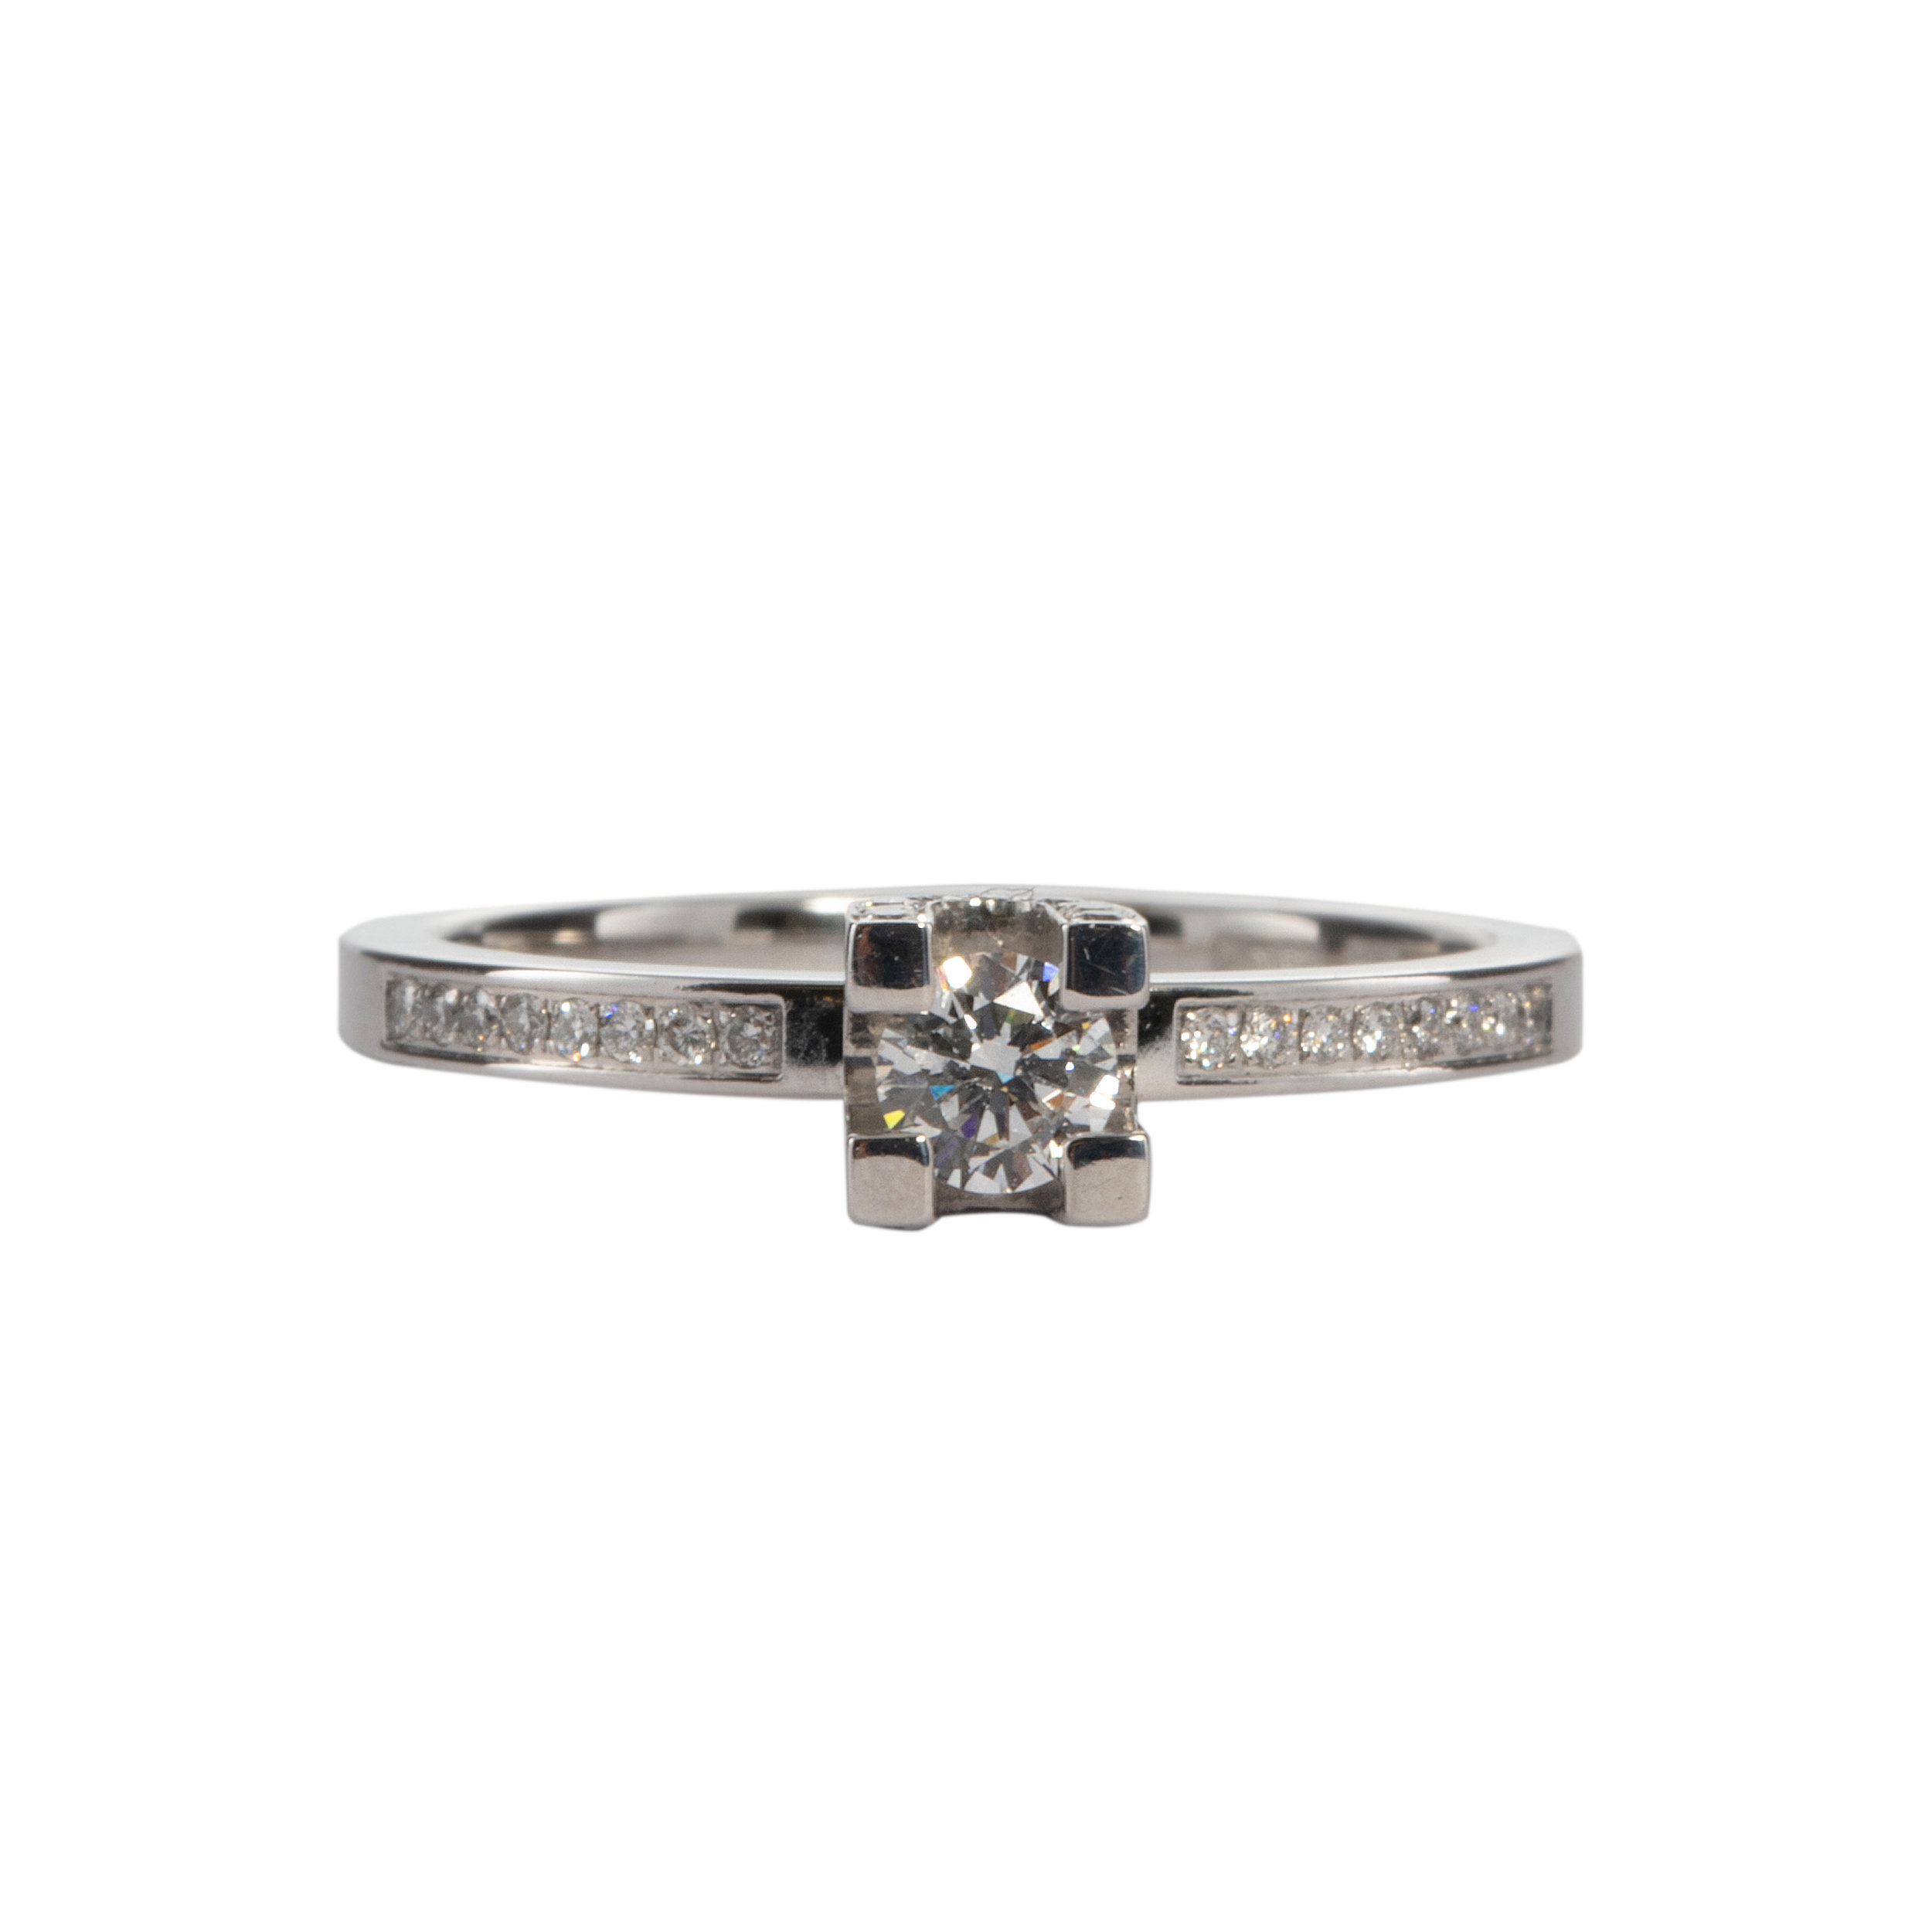 LOEGATE RING WITH DIAMONDS